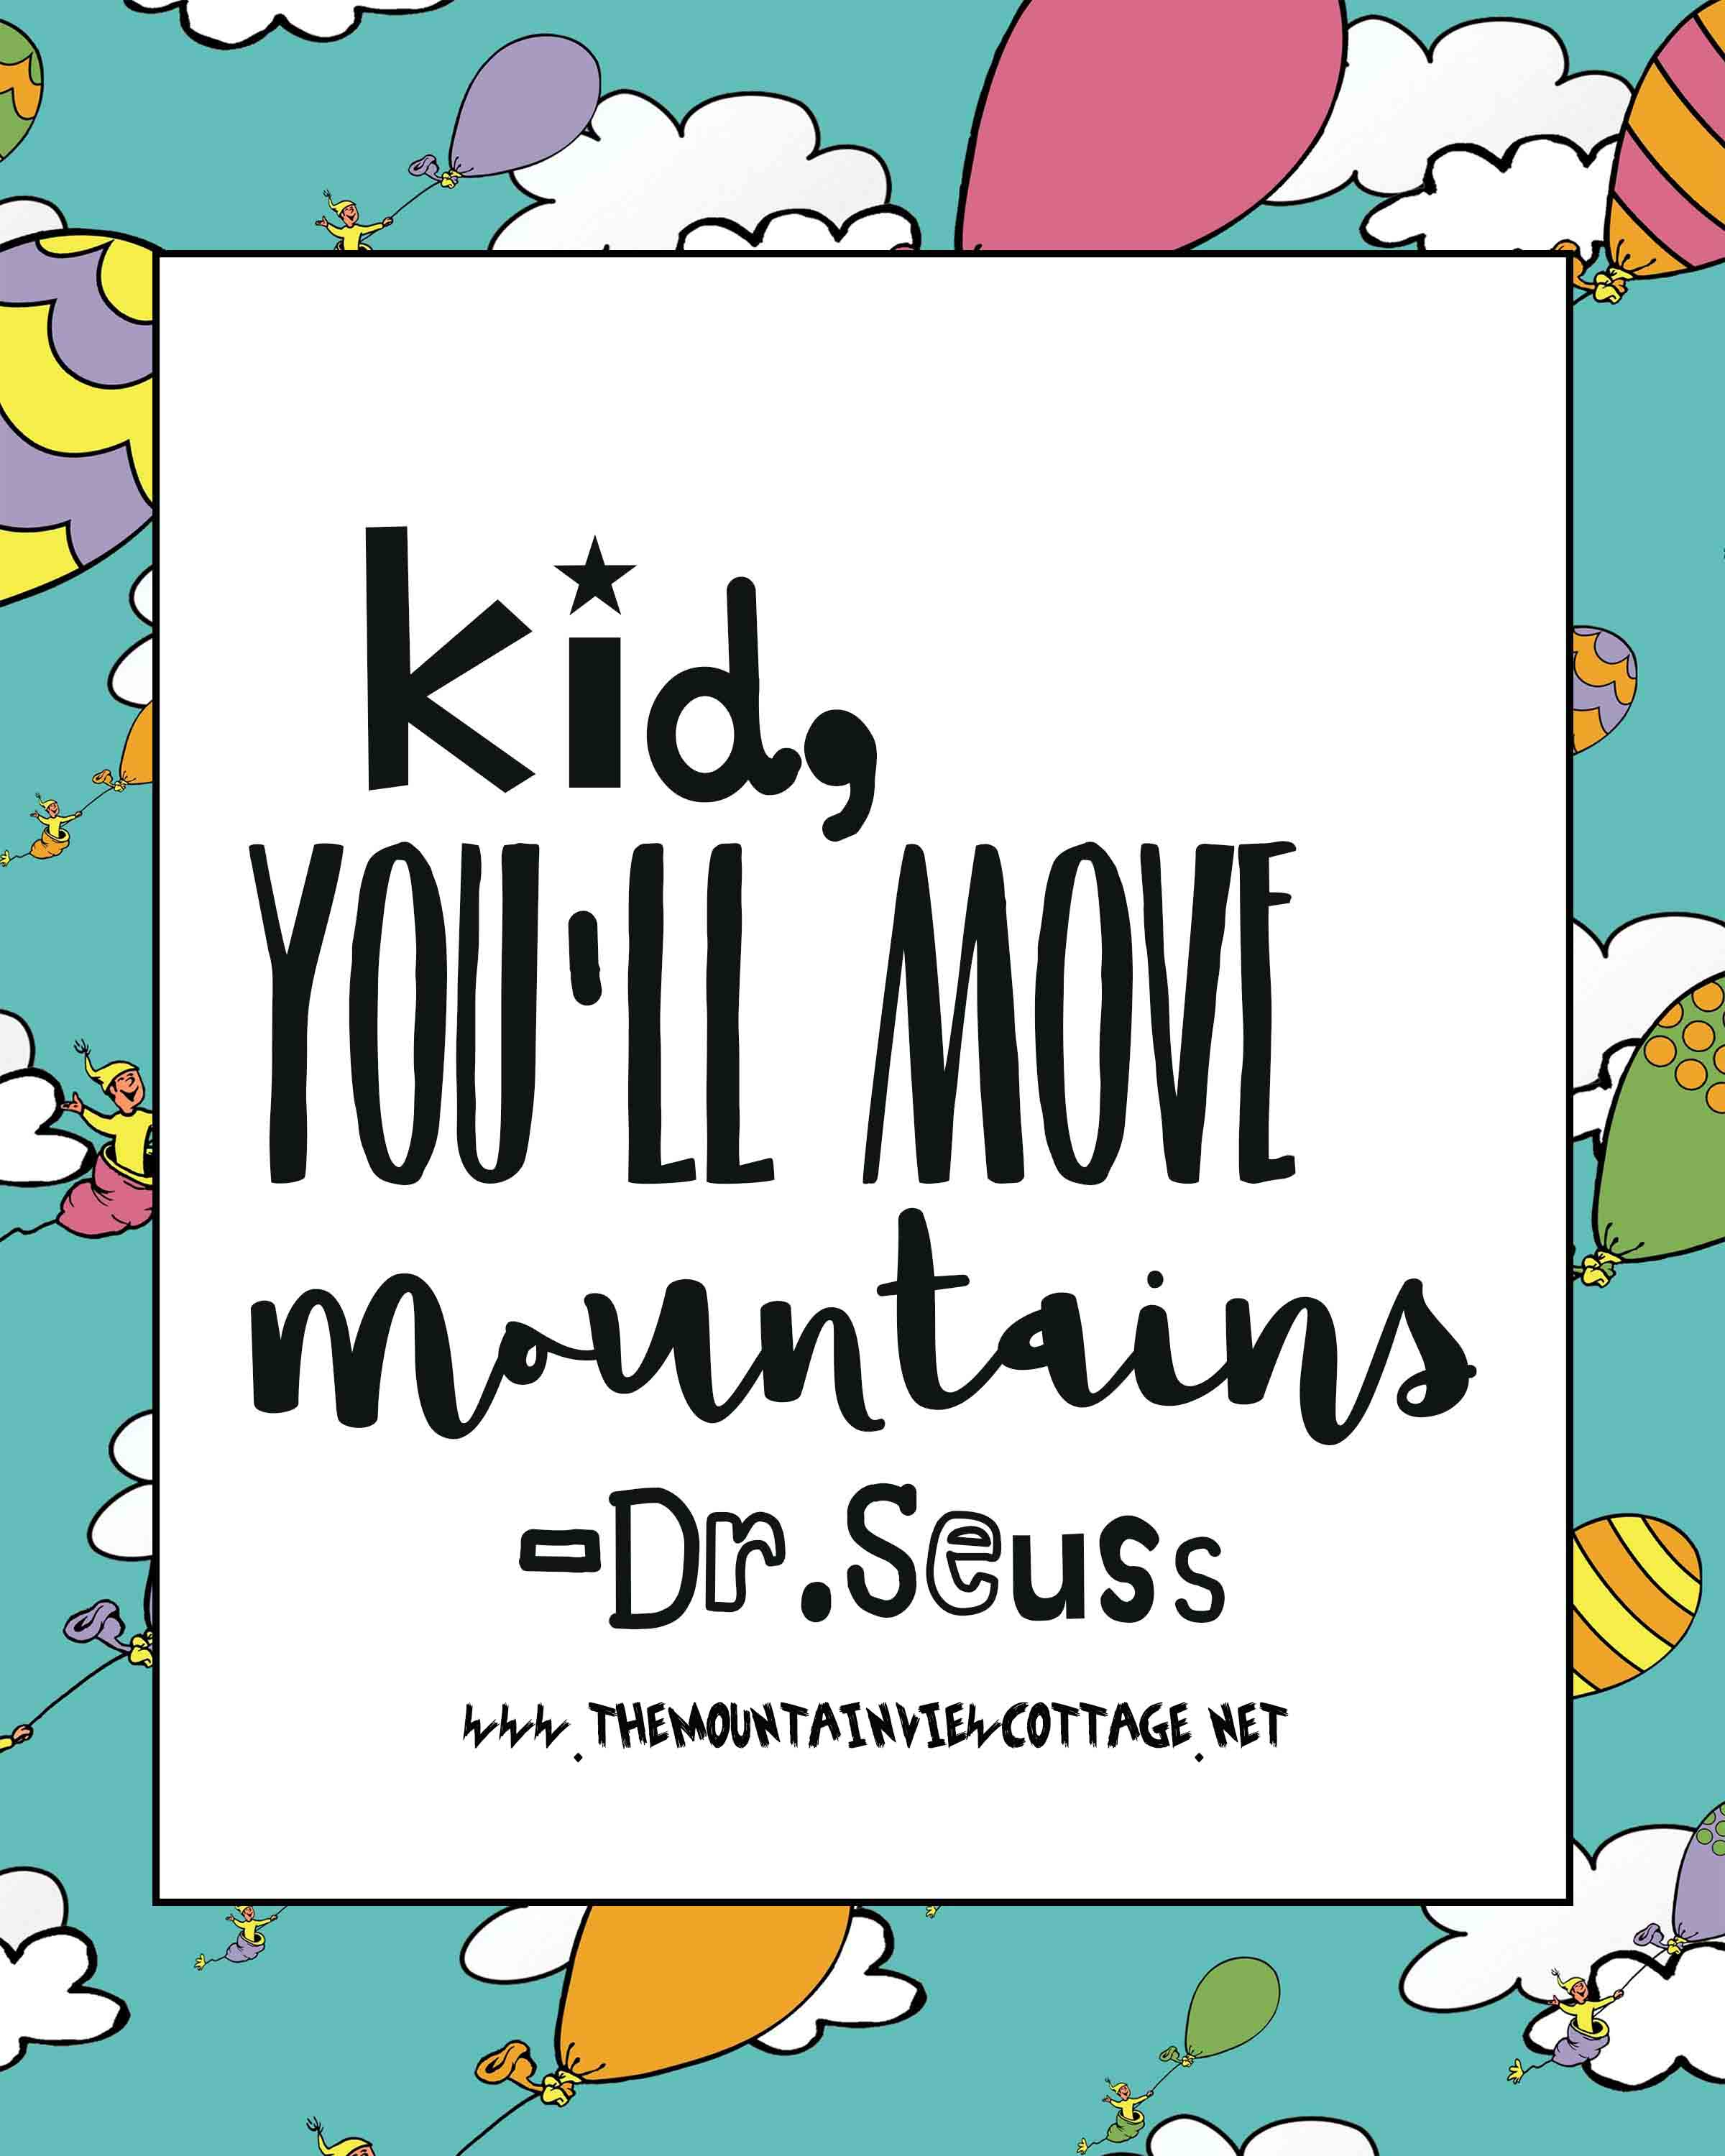 21 Incredible Dr.Seuss Quotes - The Mountain View Cottage